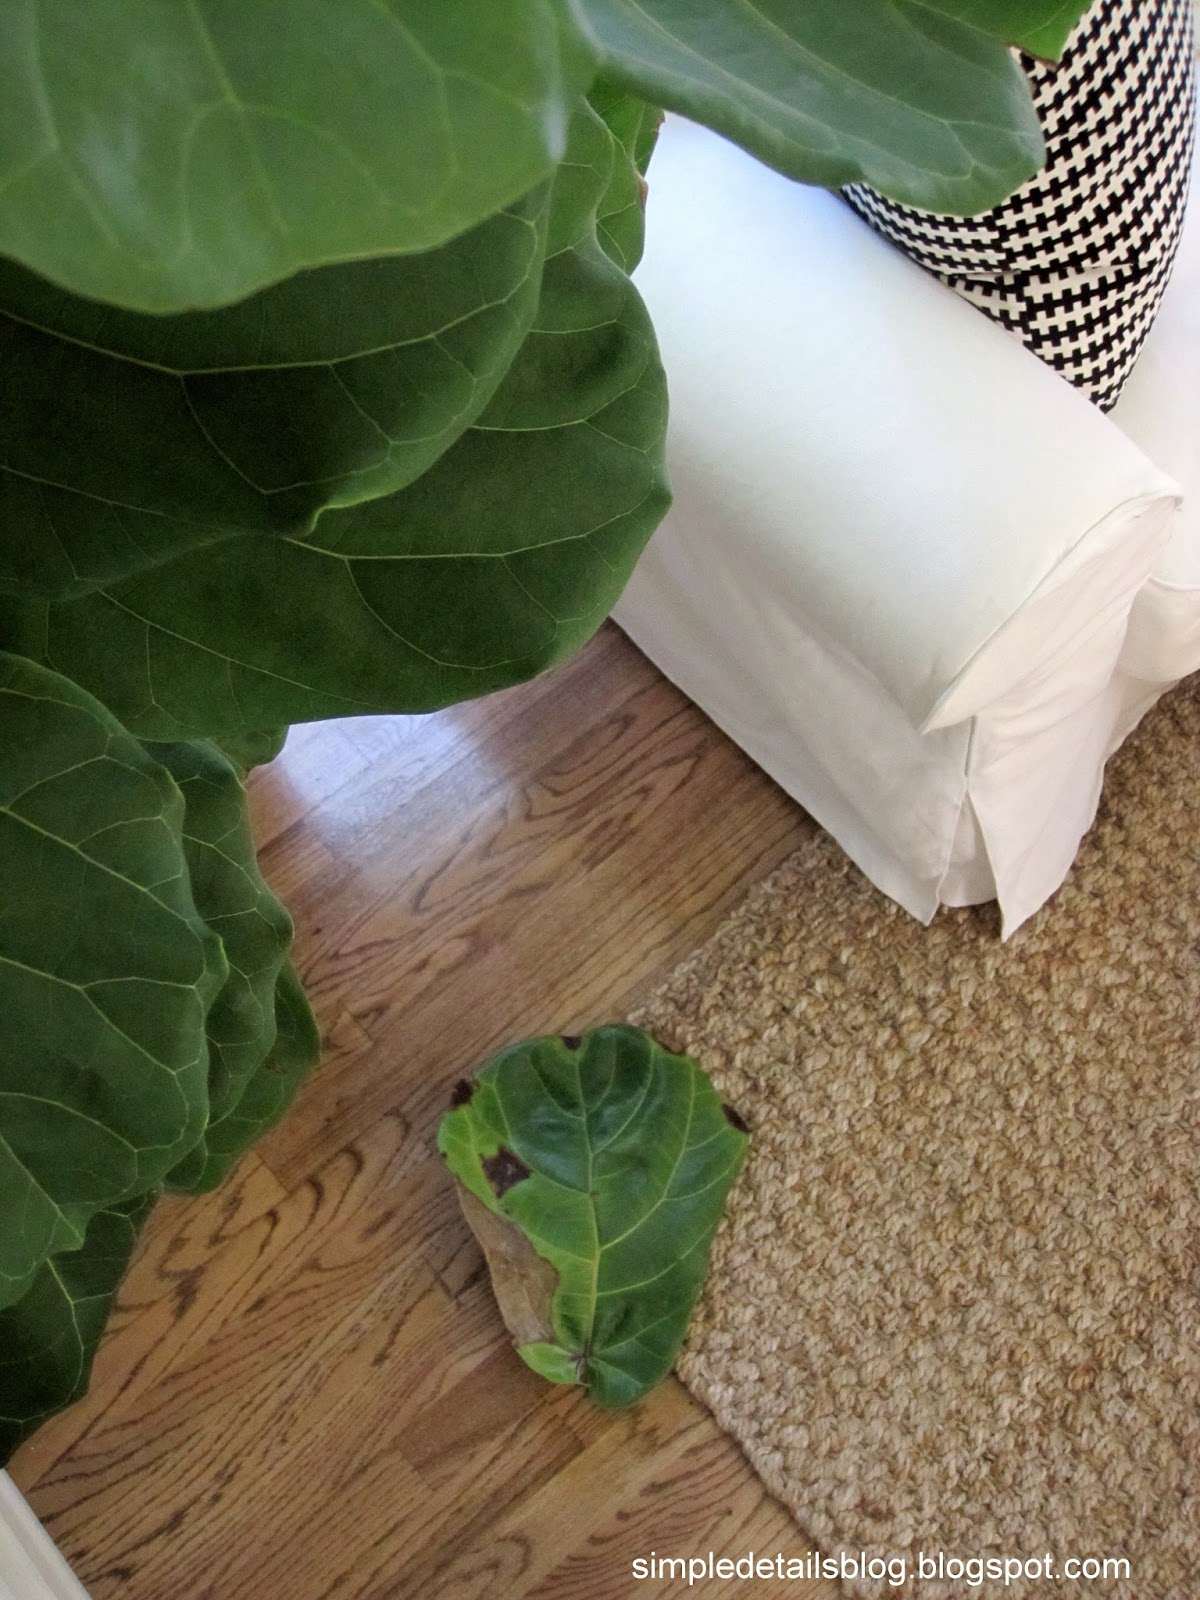 Simple Details Help For My Fiddle Leaf Fig